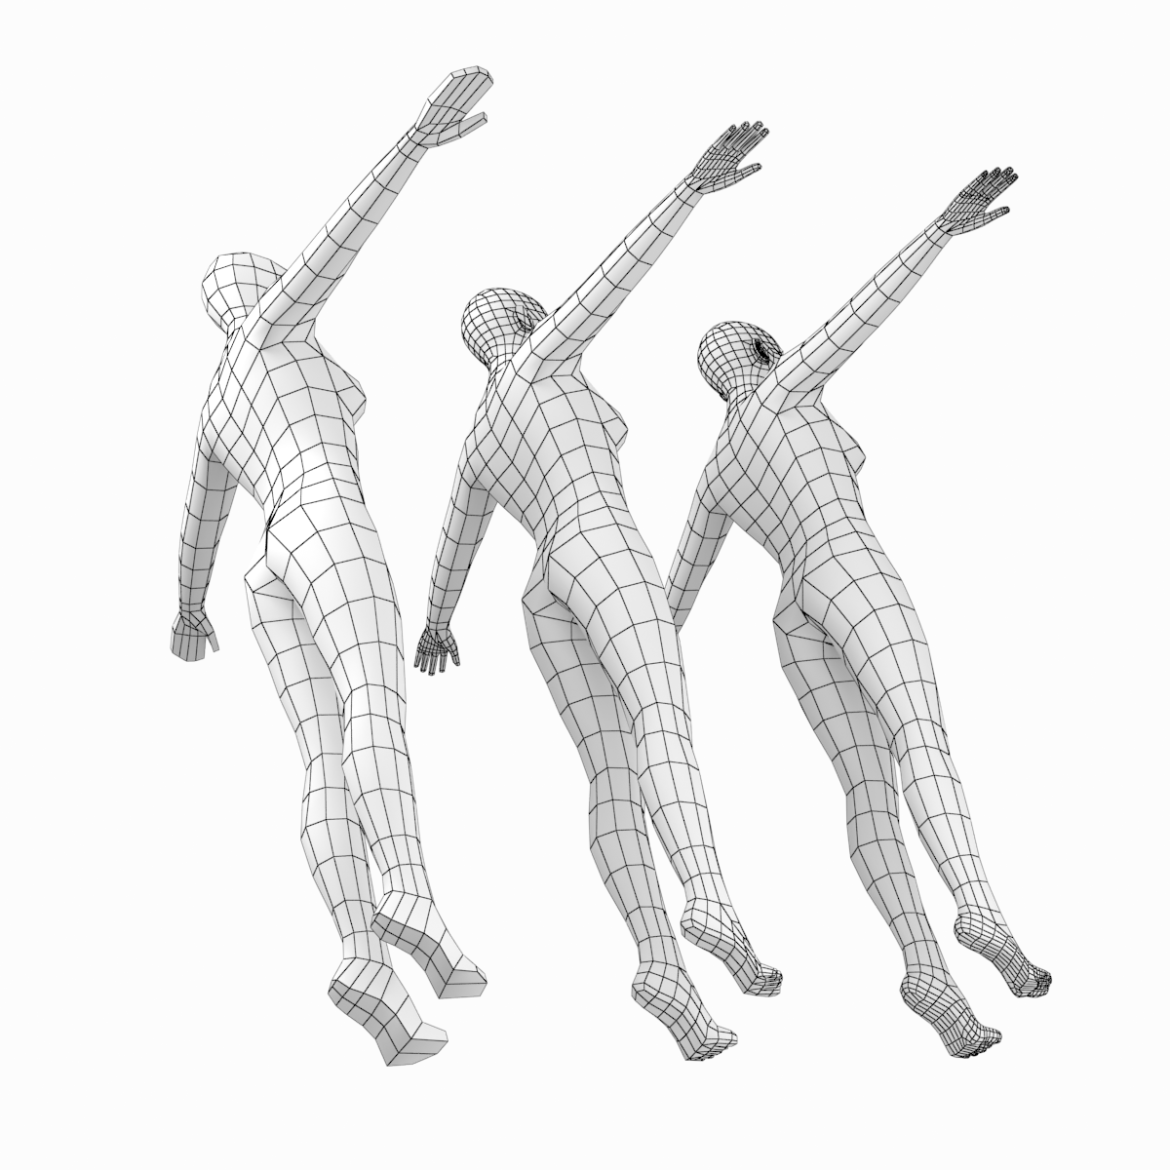 female body on toes base mesh in t-pose 3d model txt 3ds c4d dae dwg dxf fbx max ma mb obj stl png 305204